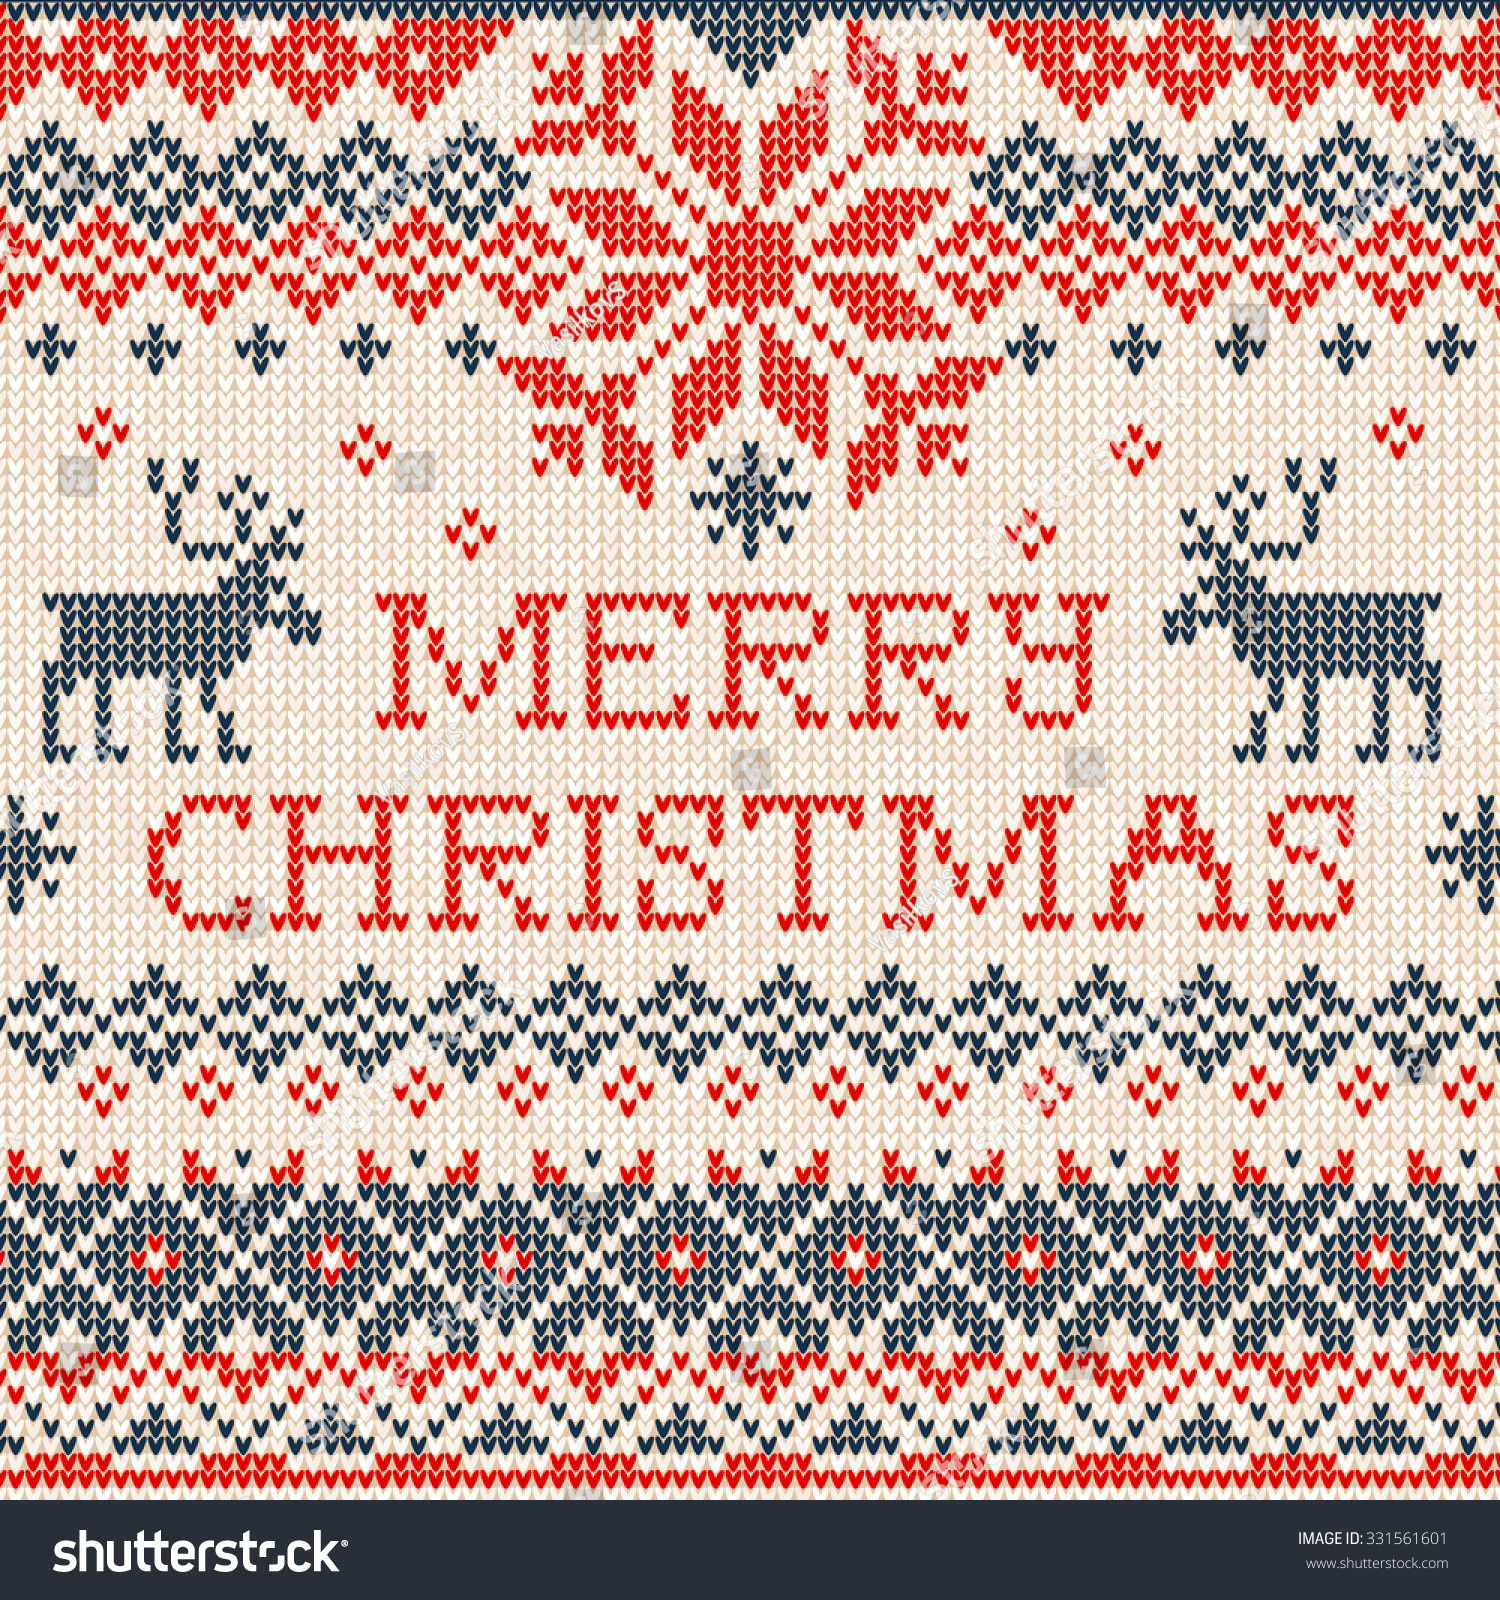 Vector illustration merry christmas scandinavian or russian style